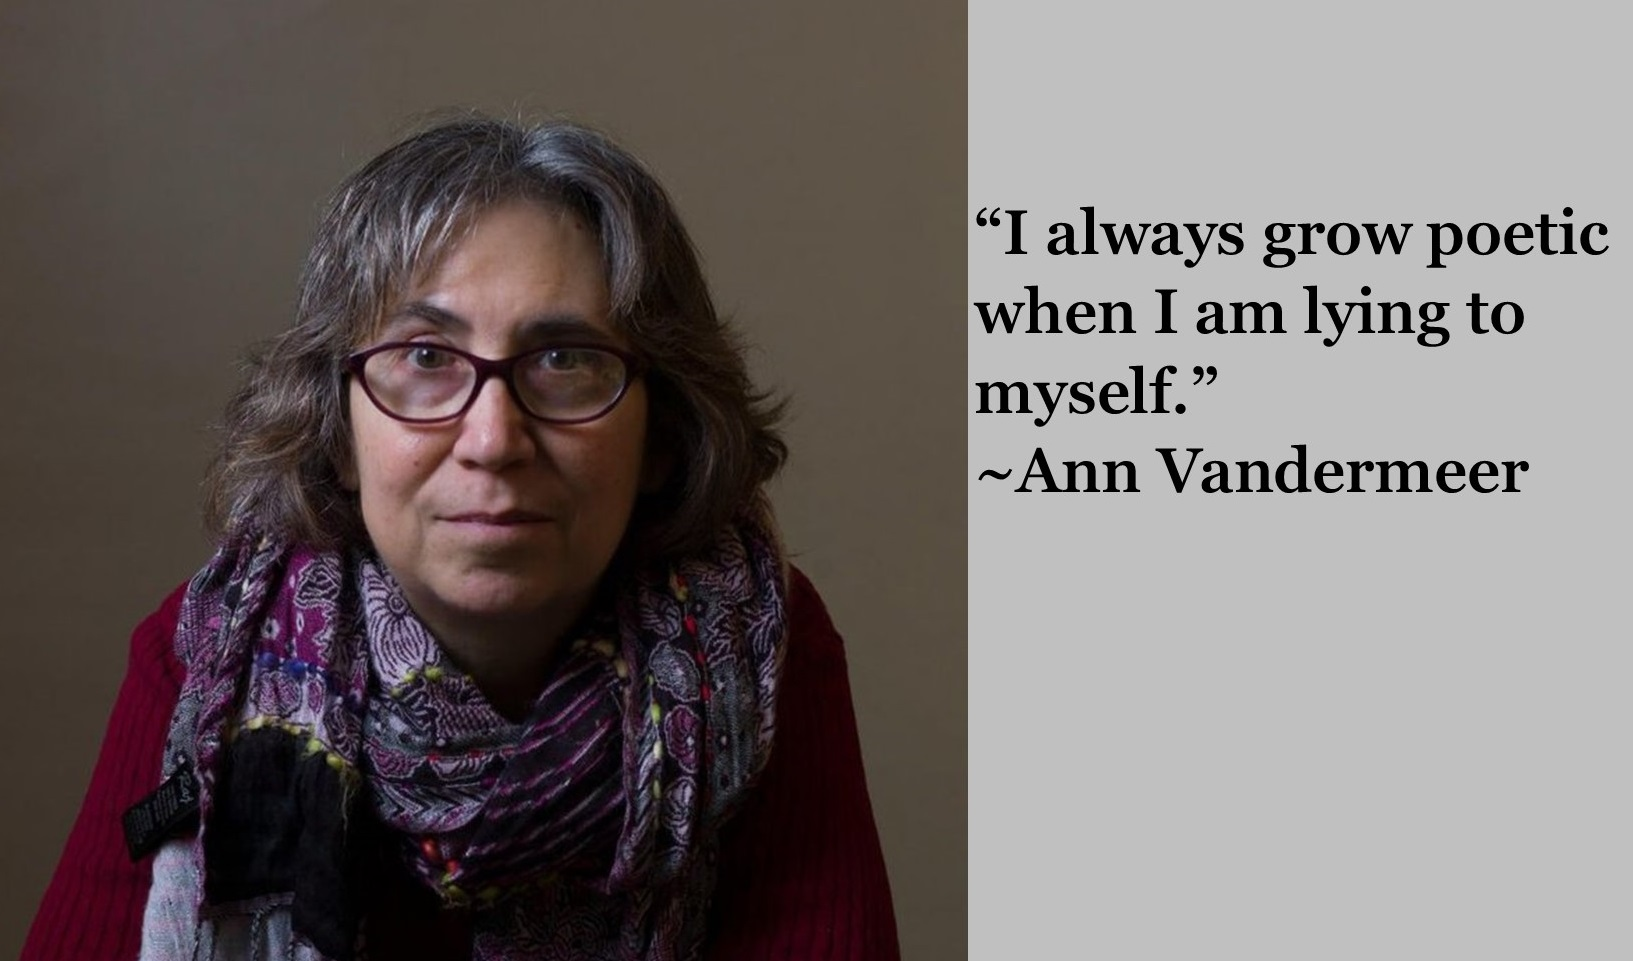 """I always grow poetic when I am lying to myself."" ~Ann Vandermeer [1633 x 931] [OC]"